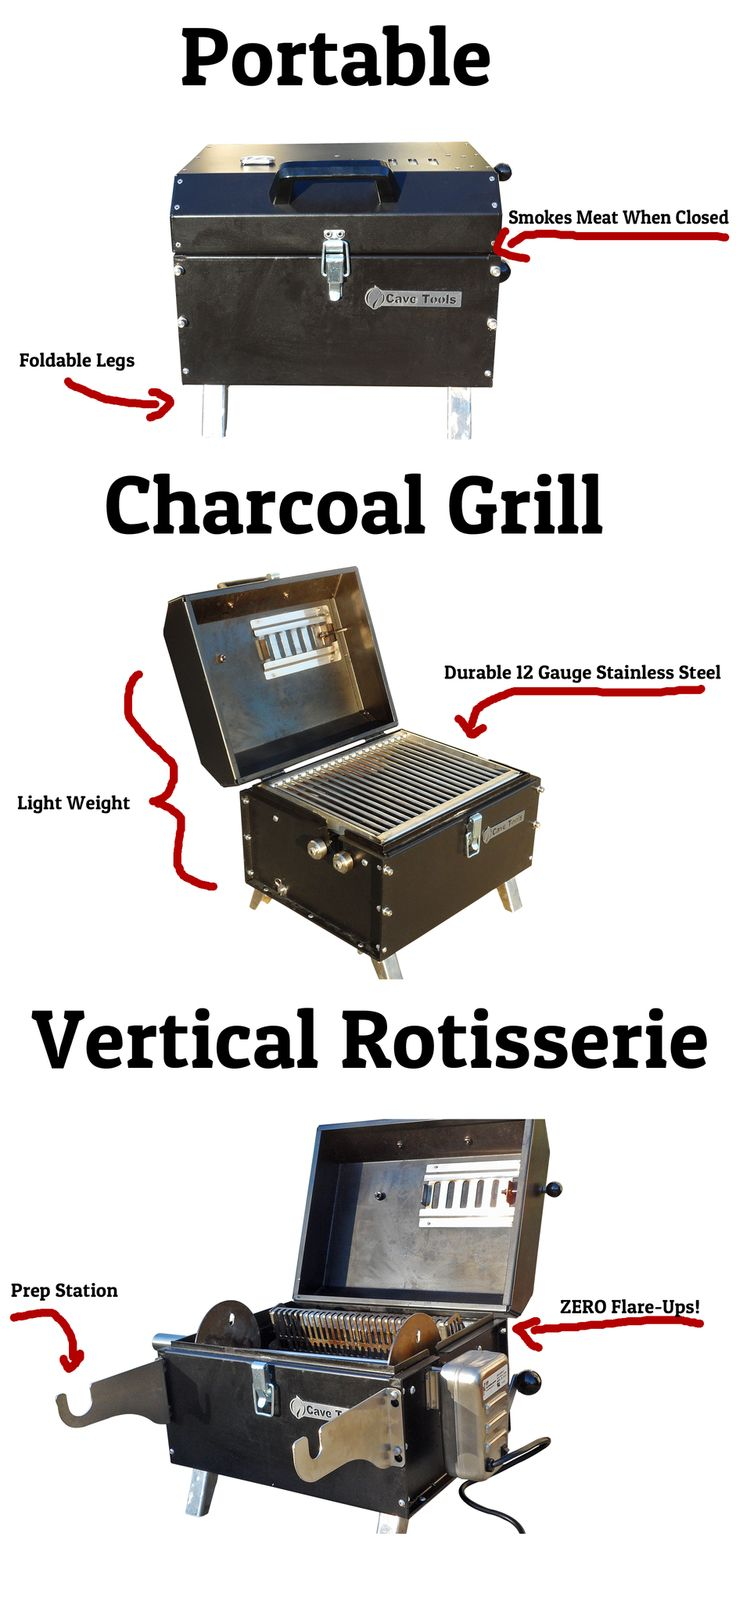 http://cavetools.com/products/portable-charcoal-grill Award Winning Portable Charcoal Grill and Rotisserie Grill Combo